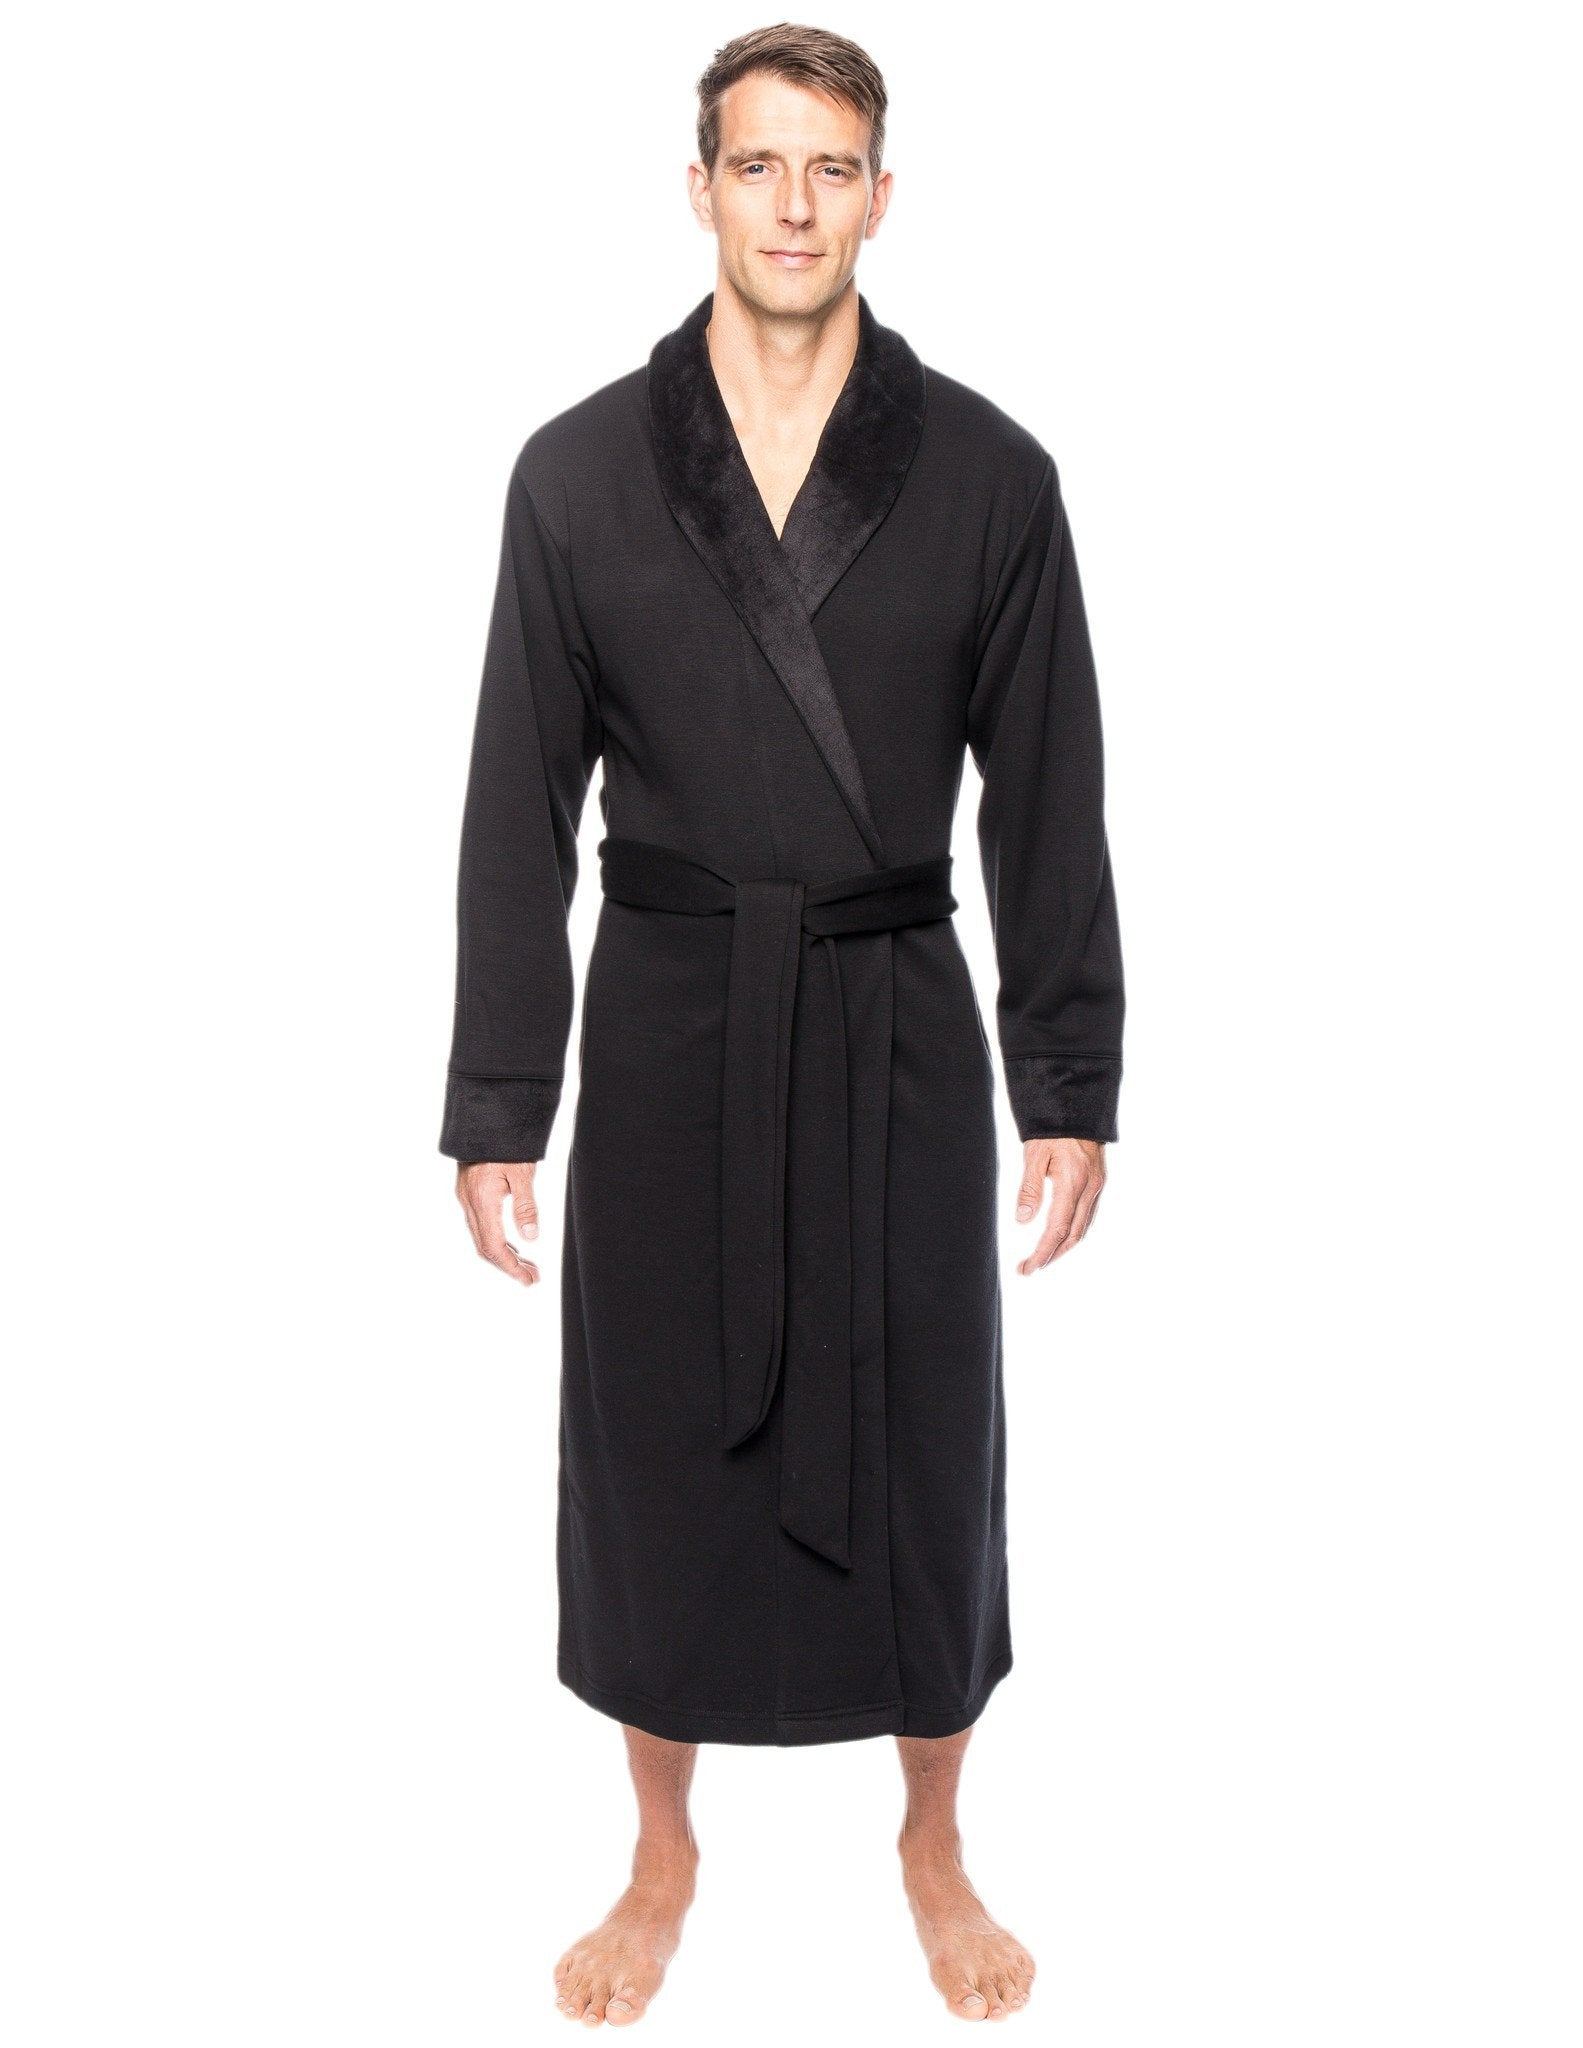 Men's Super Soft Brushed Robe - Black